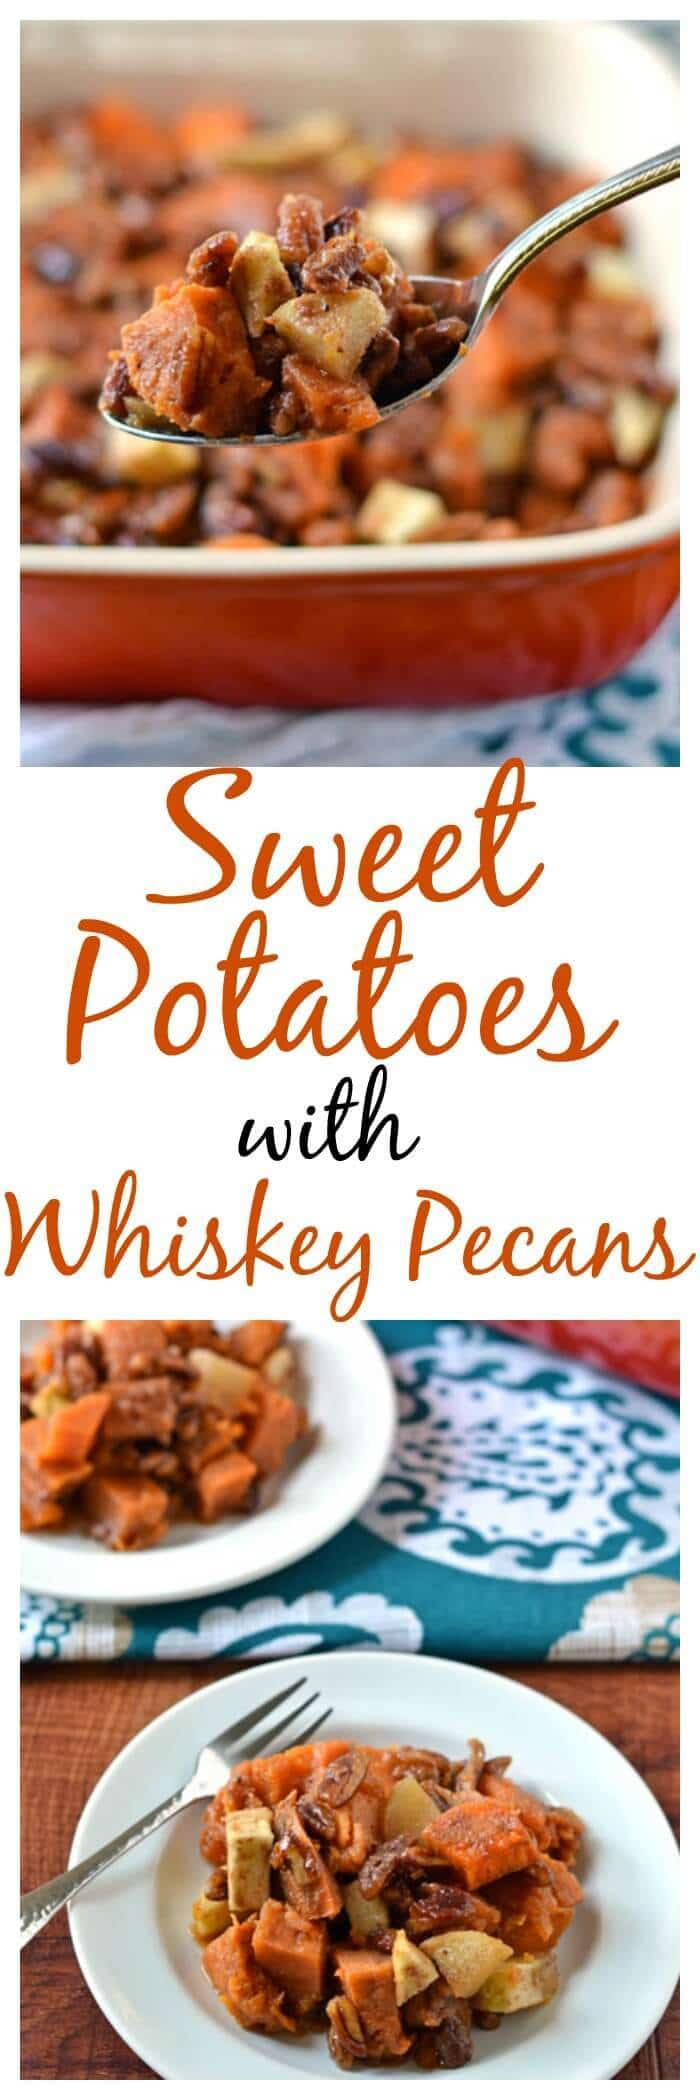 Sweet Potato with Whiskey Pecans